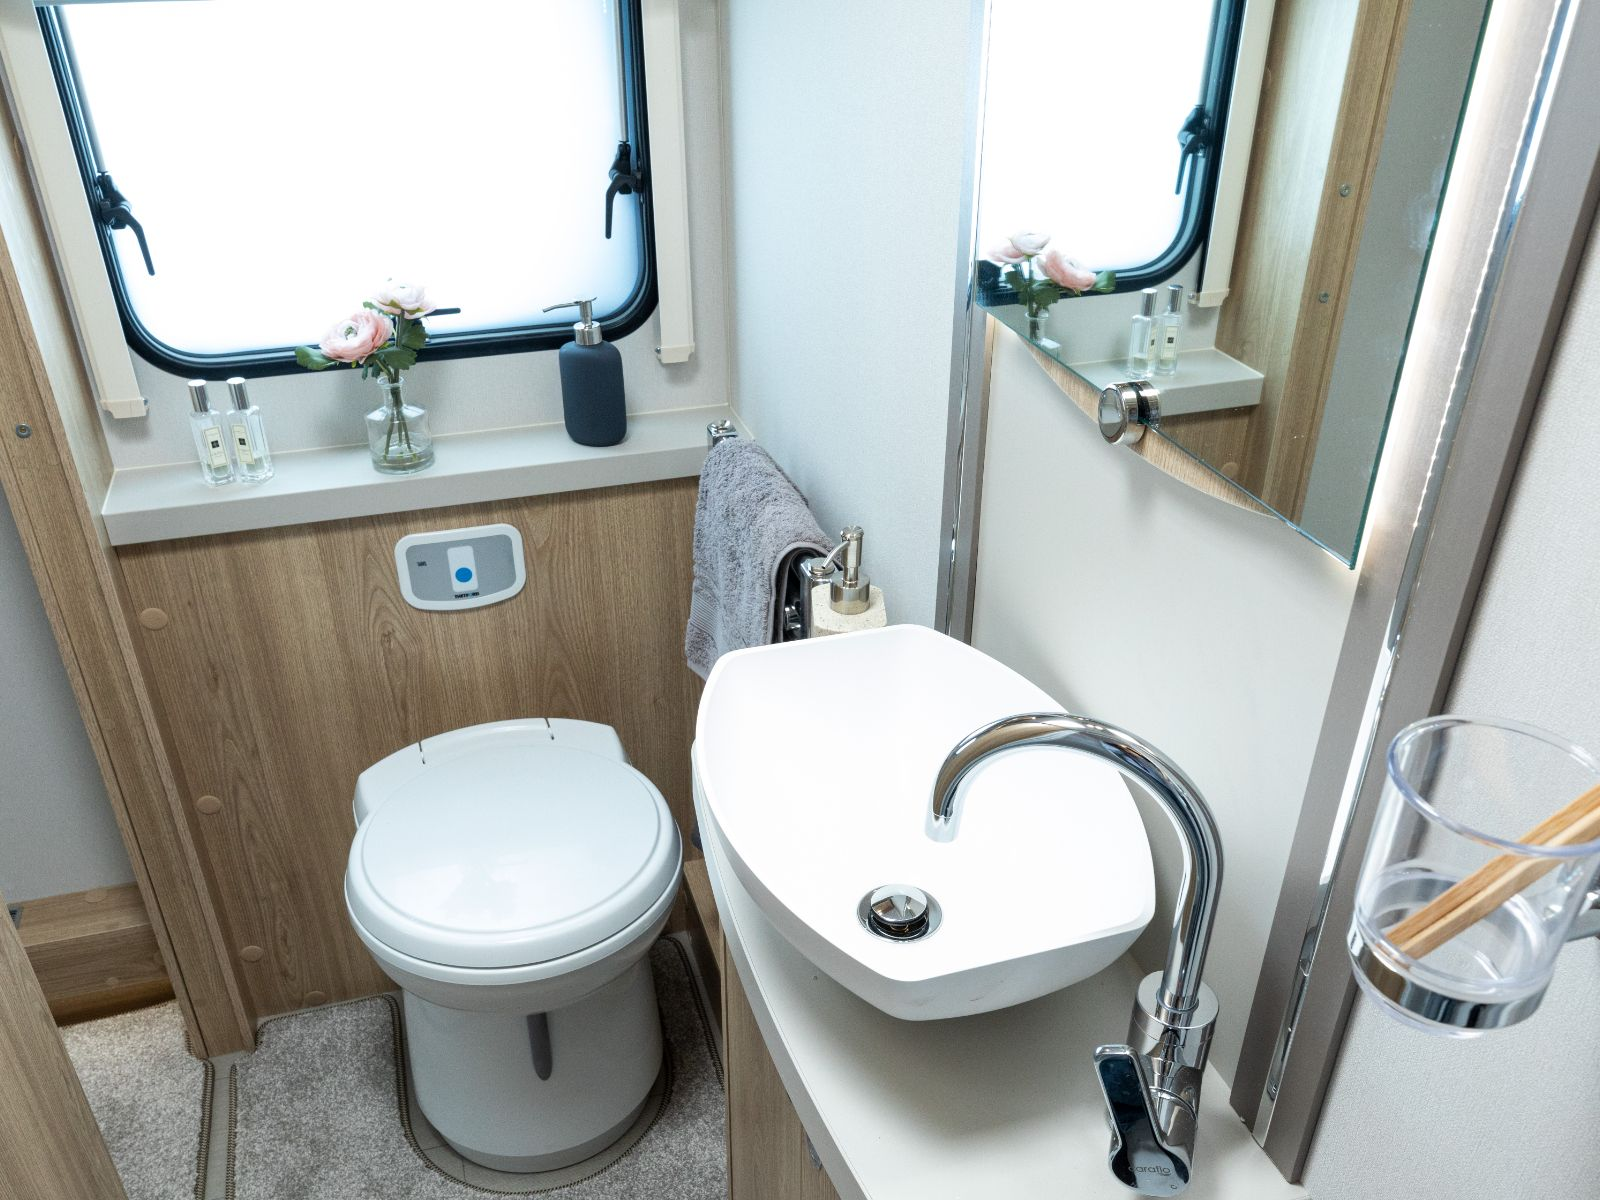 Bathroom layout with sink, mirror, window and toilet'